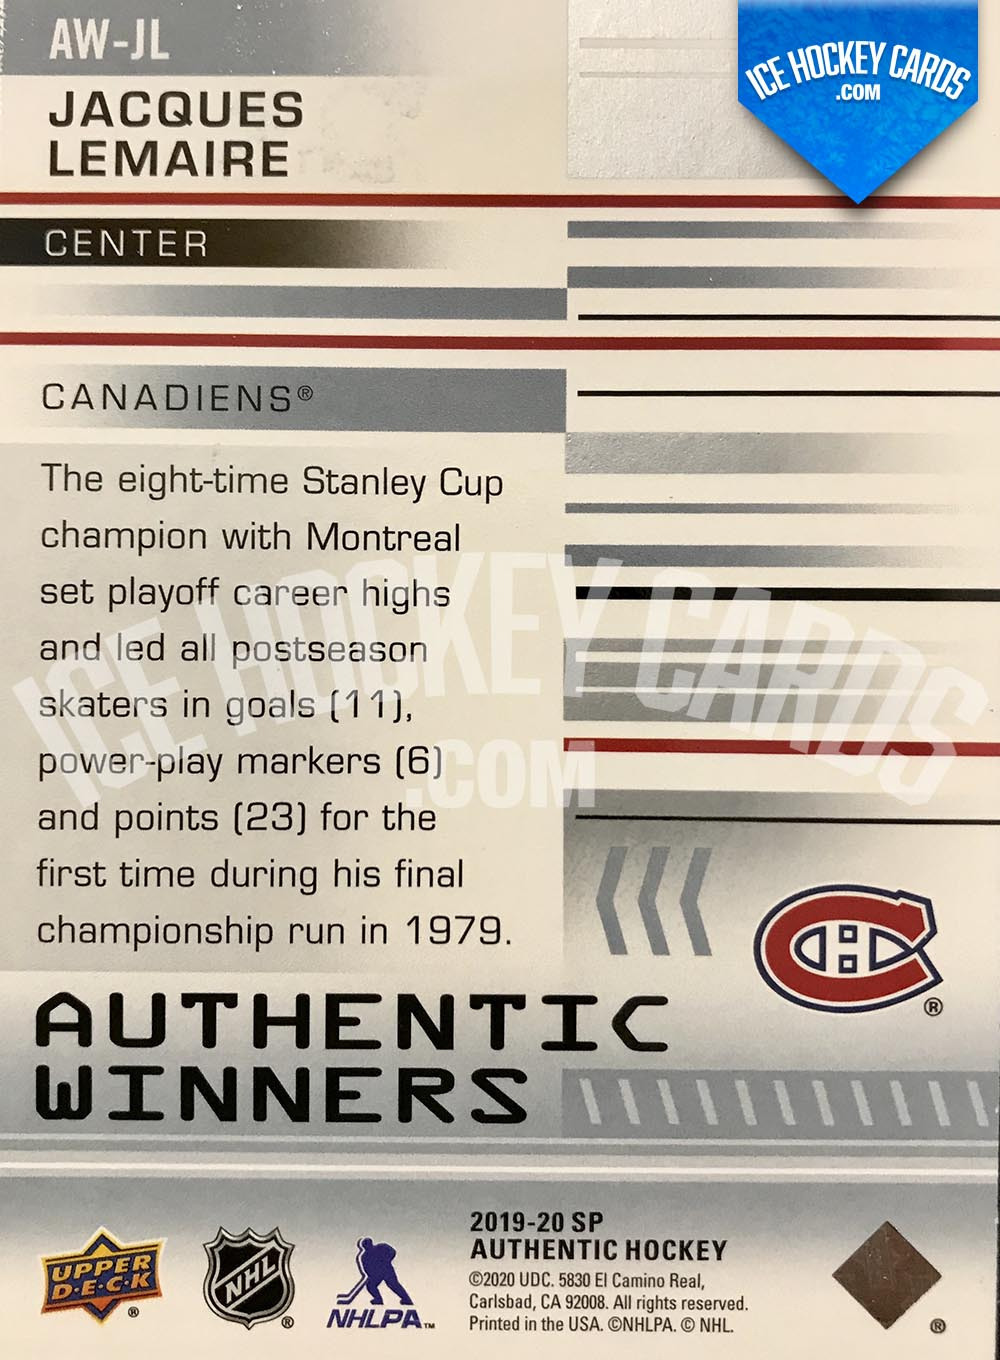 Upper Deck - SP Authentic 2019-20 - Jacques Lemaire Authentic Winners back